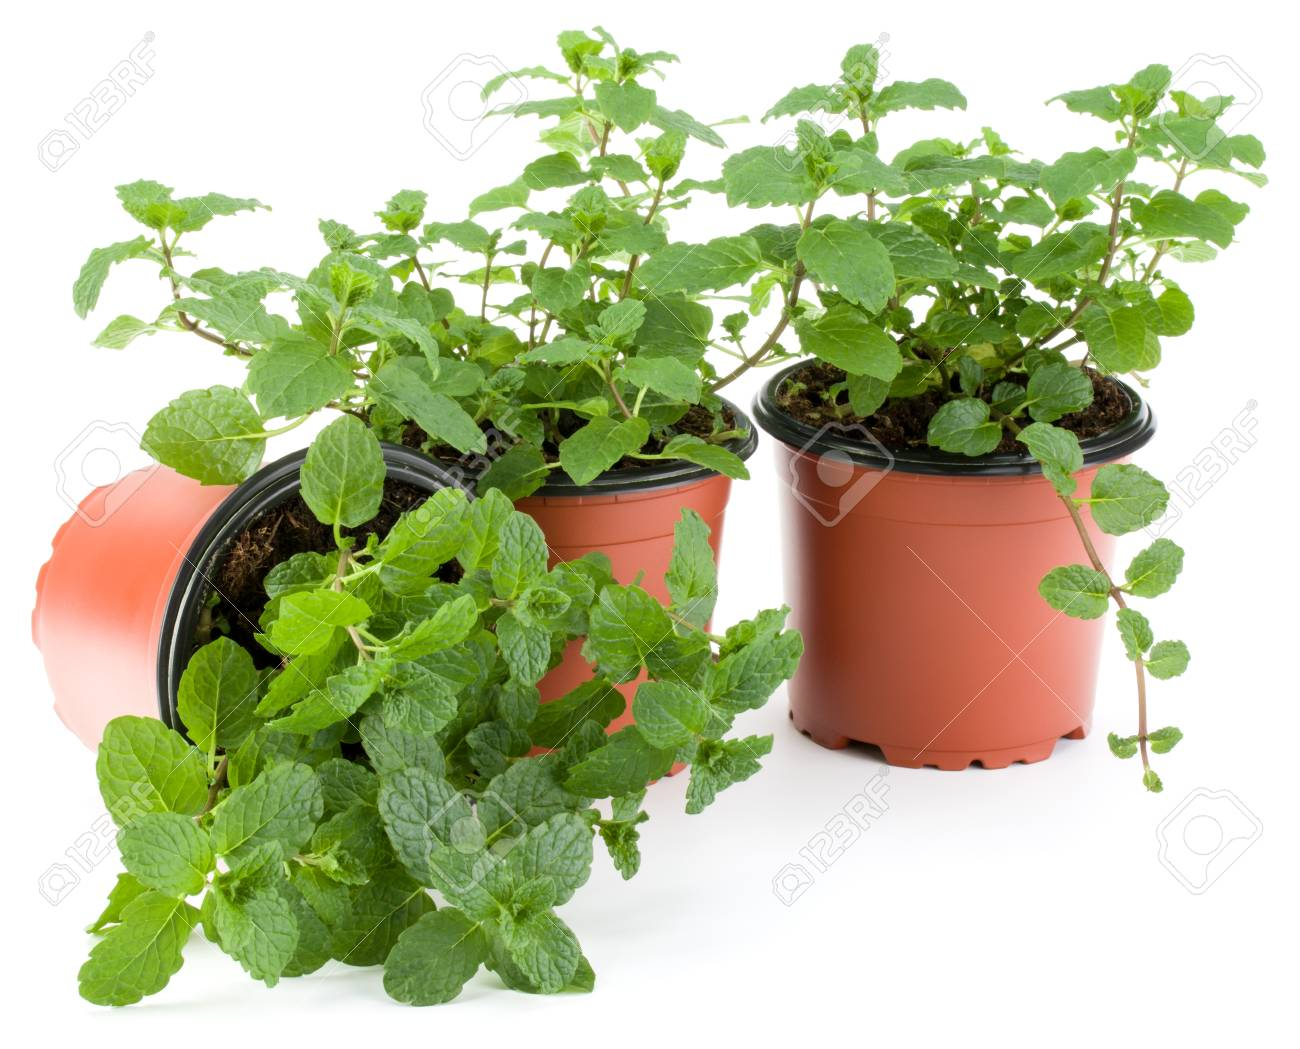 Planter Menthe En Pot peppermint herb growing in flowerpot isolated on white background..